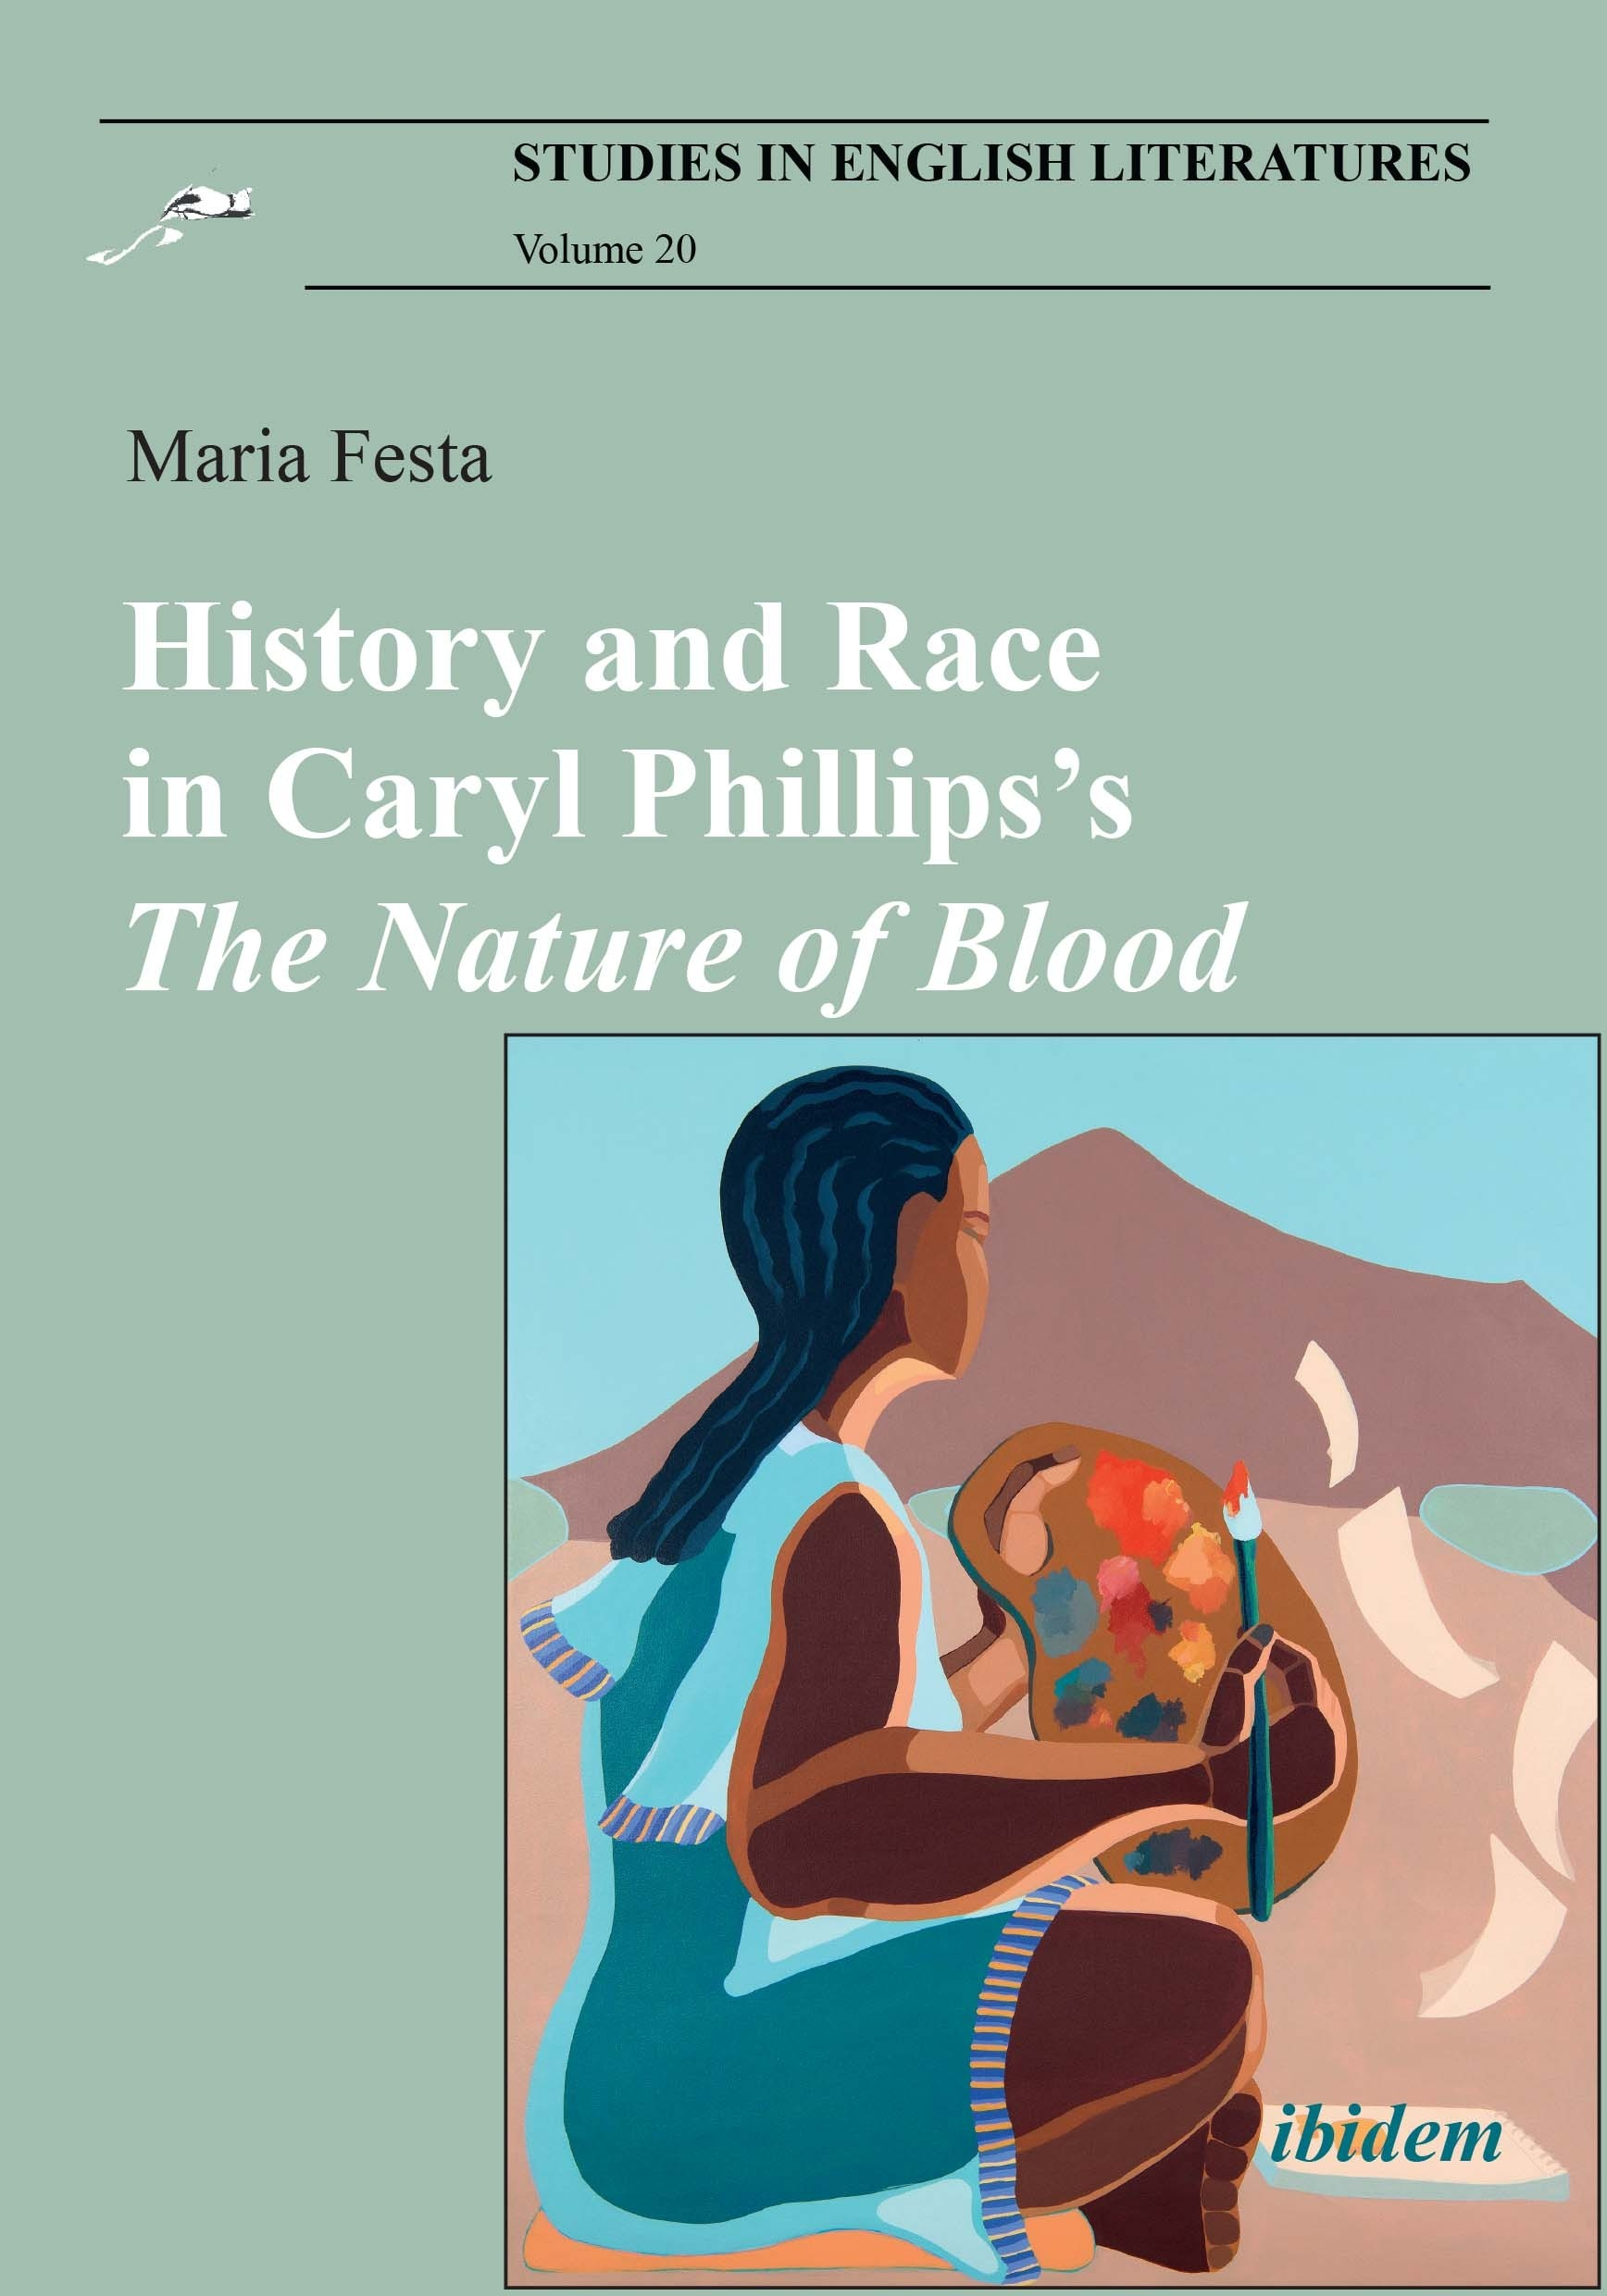 History and Race in Caryl Phillips's The Nature of Blood